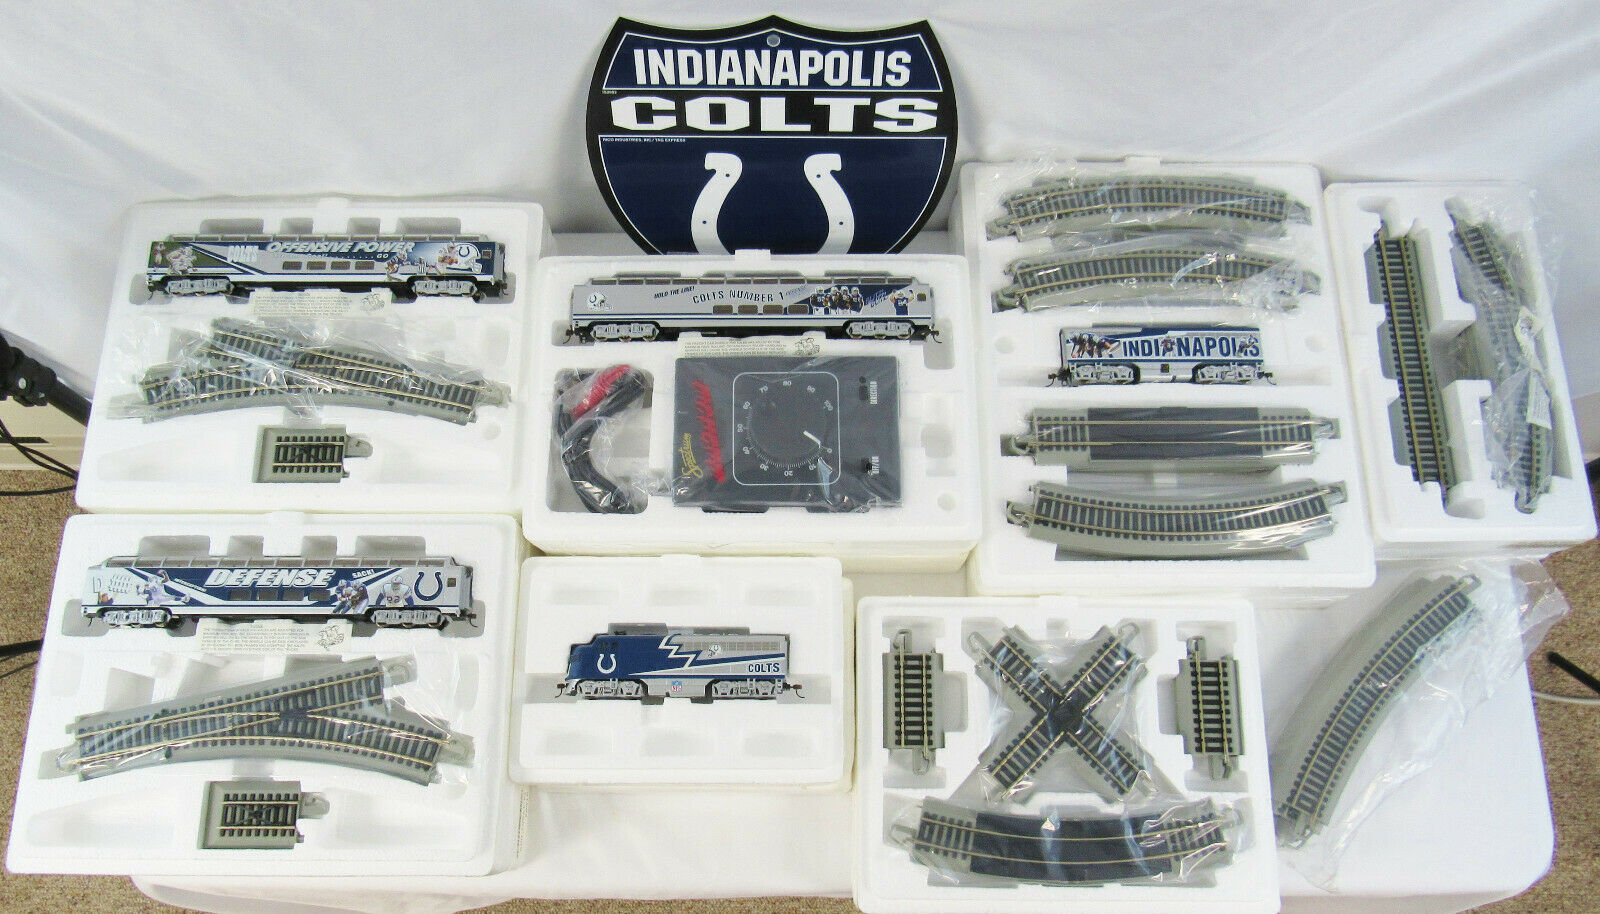 New Hawthorne Village Bachmann Indianapolis Colts Superbowl NFL Train Set - COAs